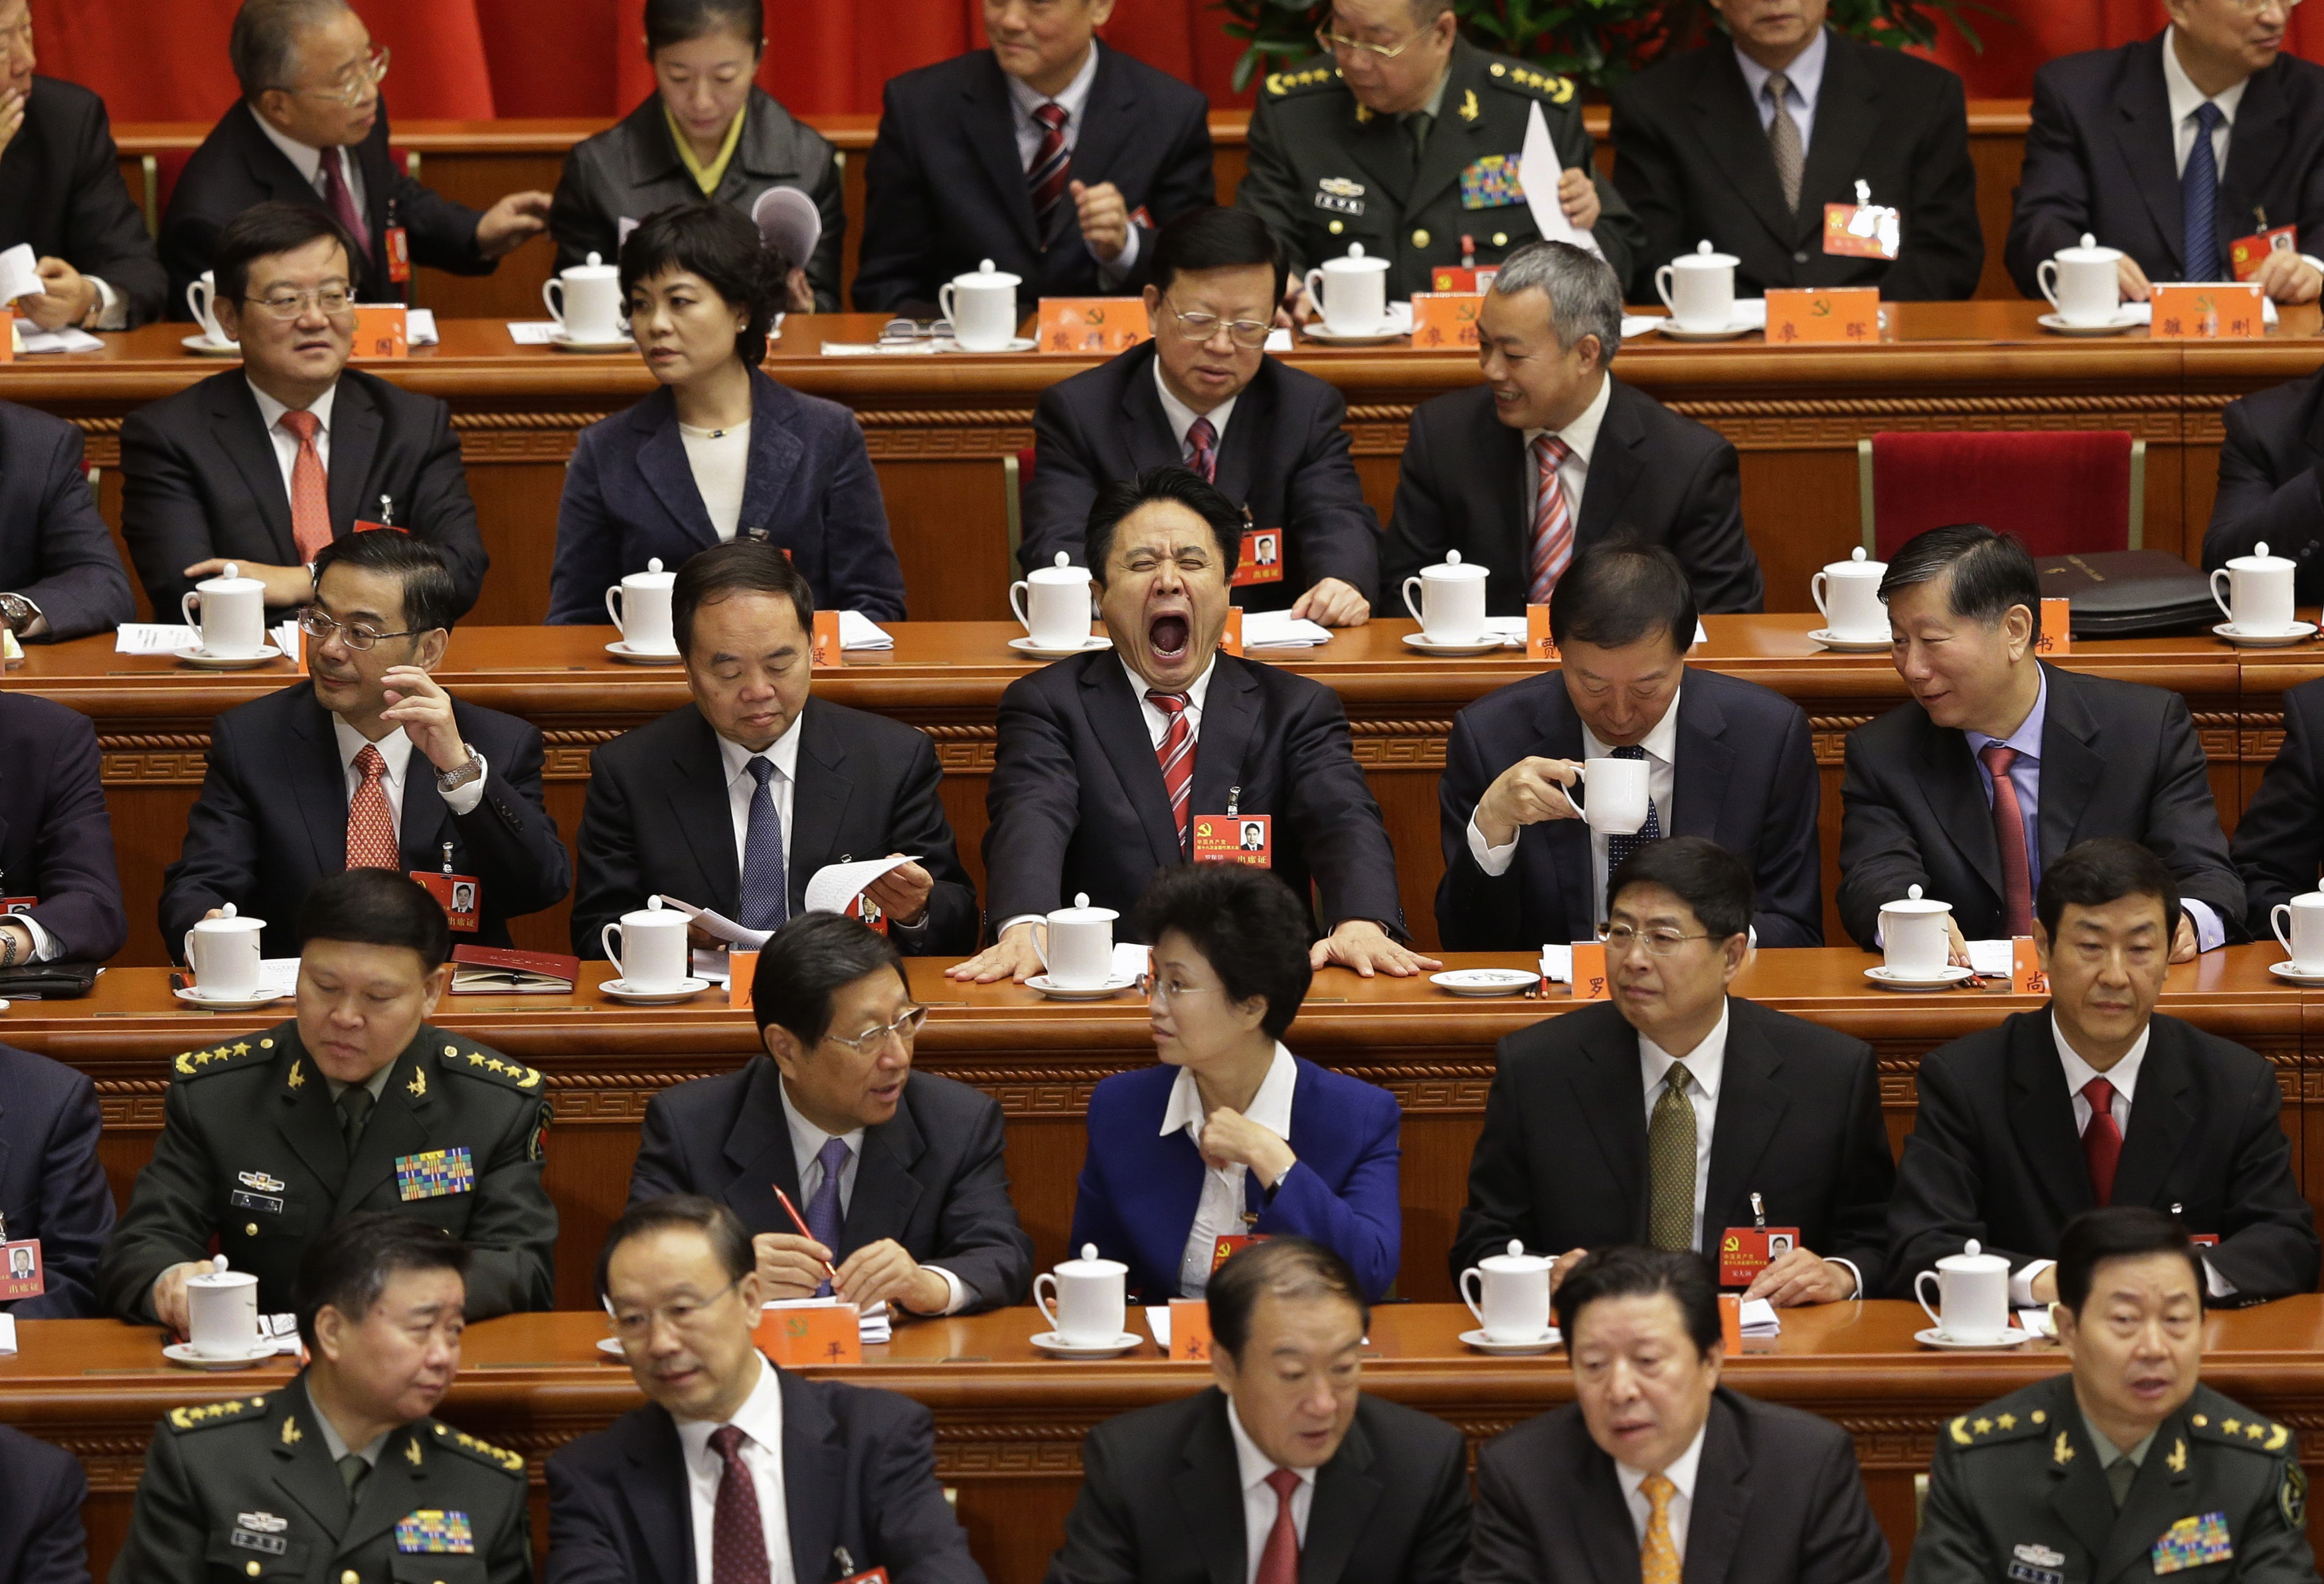 a look into the members of the communist party of china They have 83 million party members when will china's communist party i predicted that over the long hail historians will look back and observe that china.